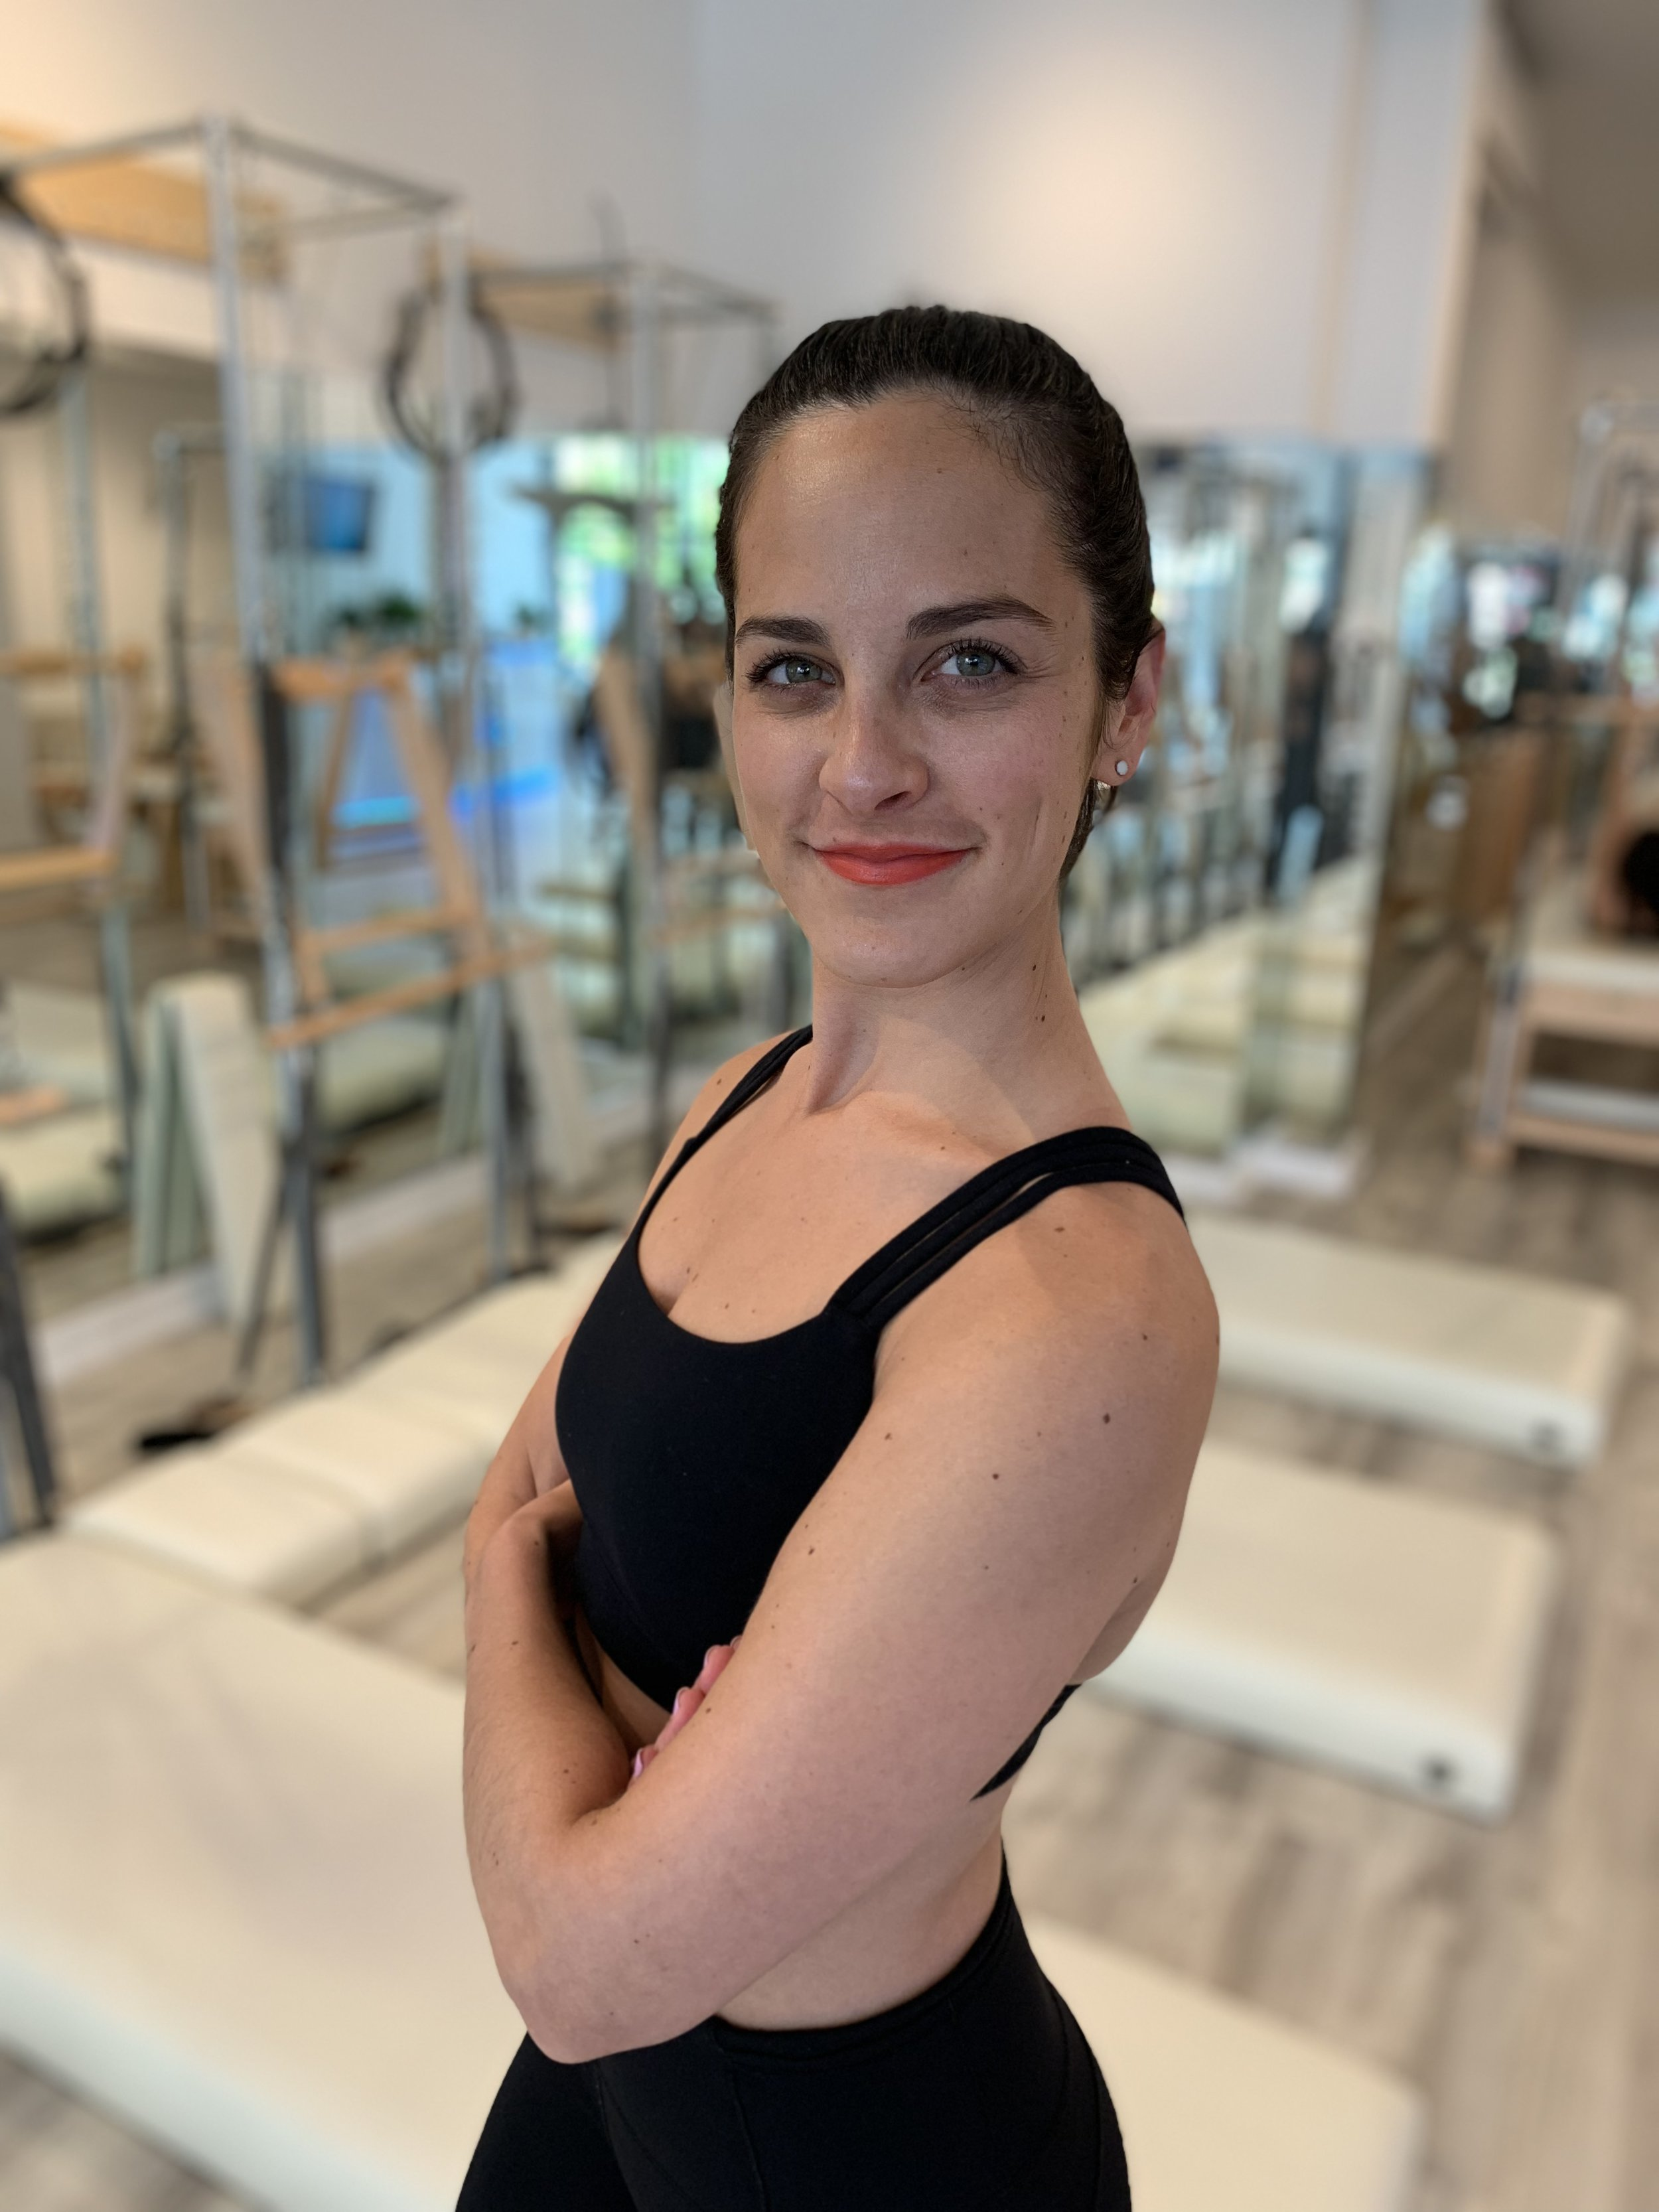 Sarah   Sarah loves Pilates because it's an amazing workout for everyone! She works with a wide range of clients including pre and post natal, those with injuries, beginner and advanced clients, and people of all ages. She loves to utilize all of the classical equipment so her clients can get the most out of their session. Sarah likes to focus on the technique of the exercise first and then continue to execute with flow. She is able to assess a client and quickly adapt to their specific need. Sarah is also happy to target an area a client would like to focus on - after all this is your workout! Her clients will tell you she has a bubbly personality that is infectious. Having fun while we work out? Yes please!